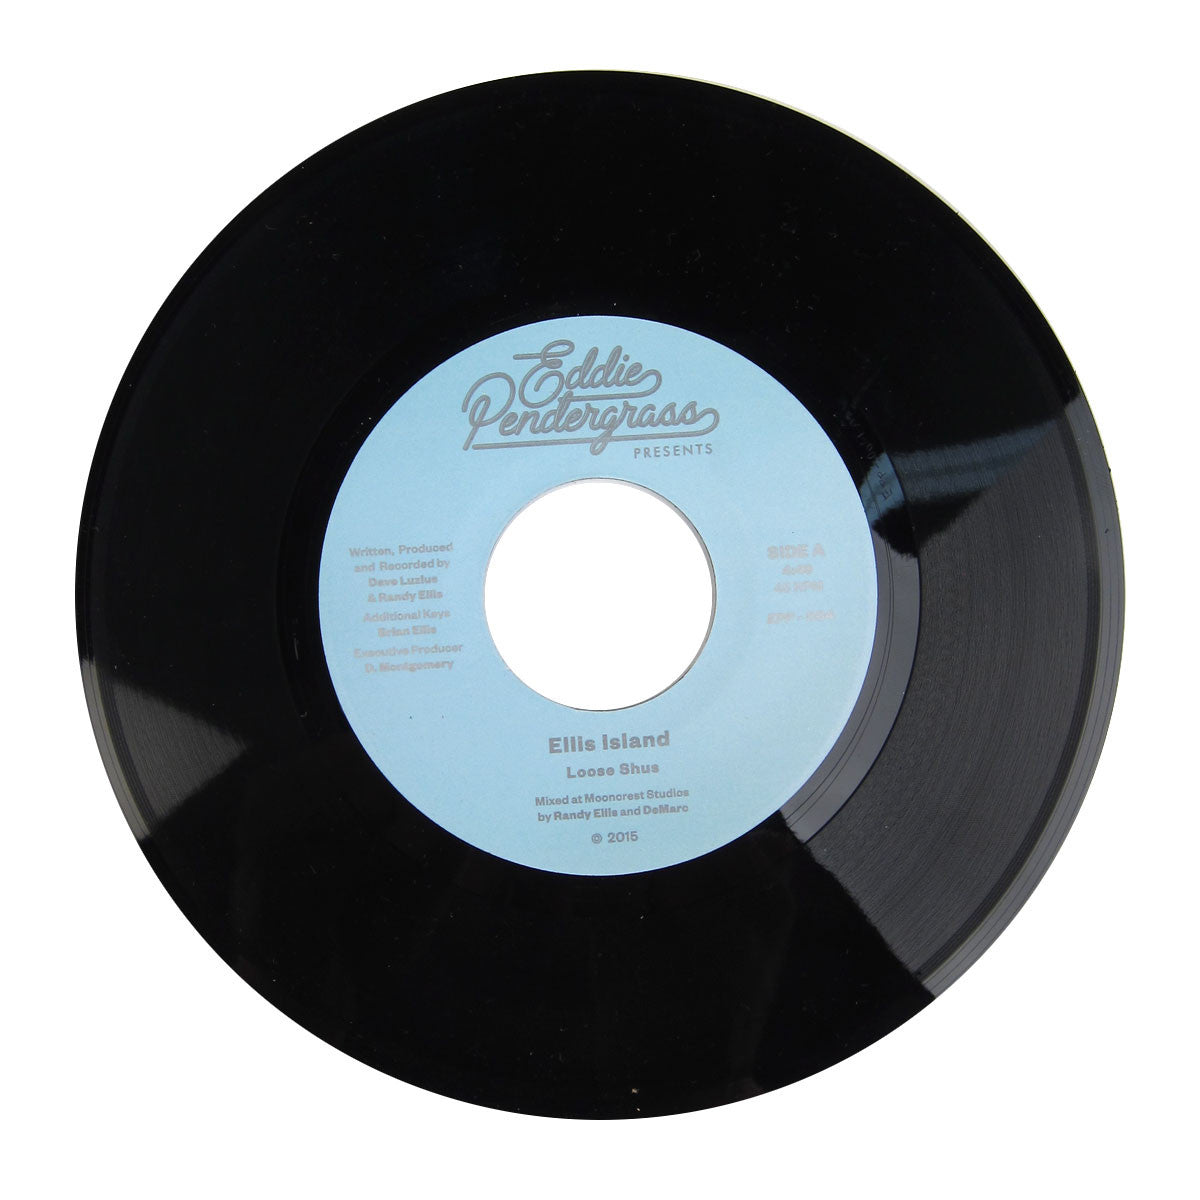 Loose Shus / Brian Ellis: Ellis Island / Afterthought Vinyl 7""